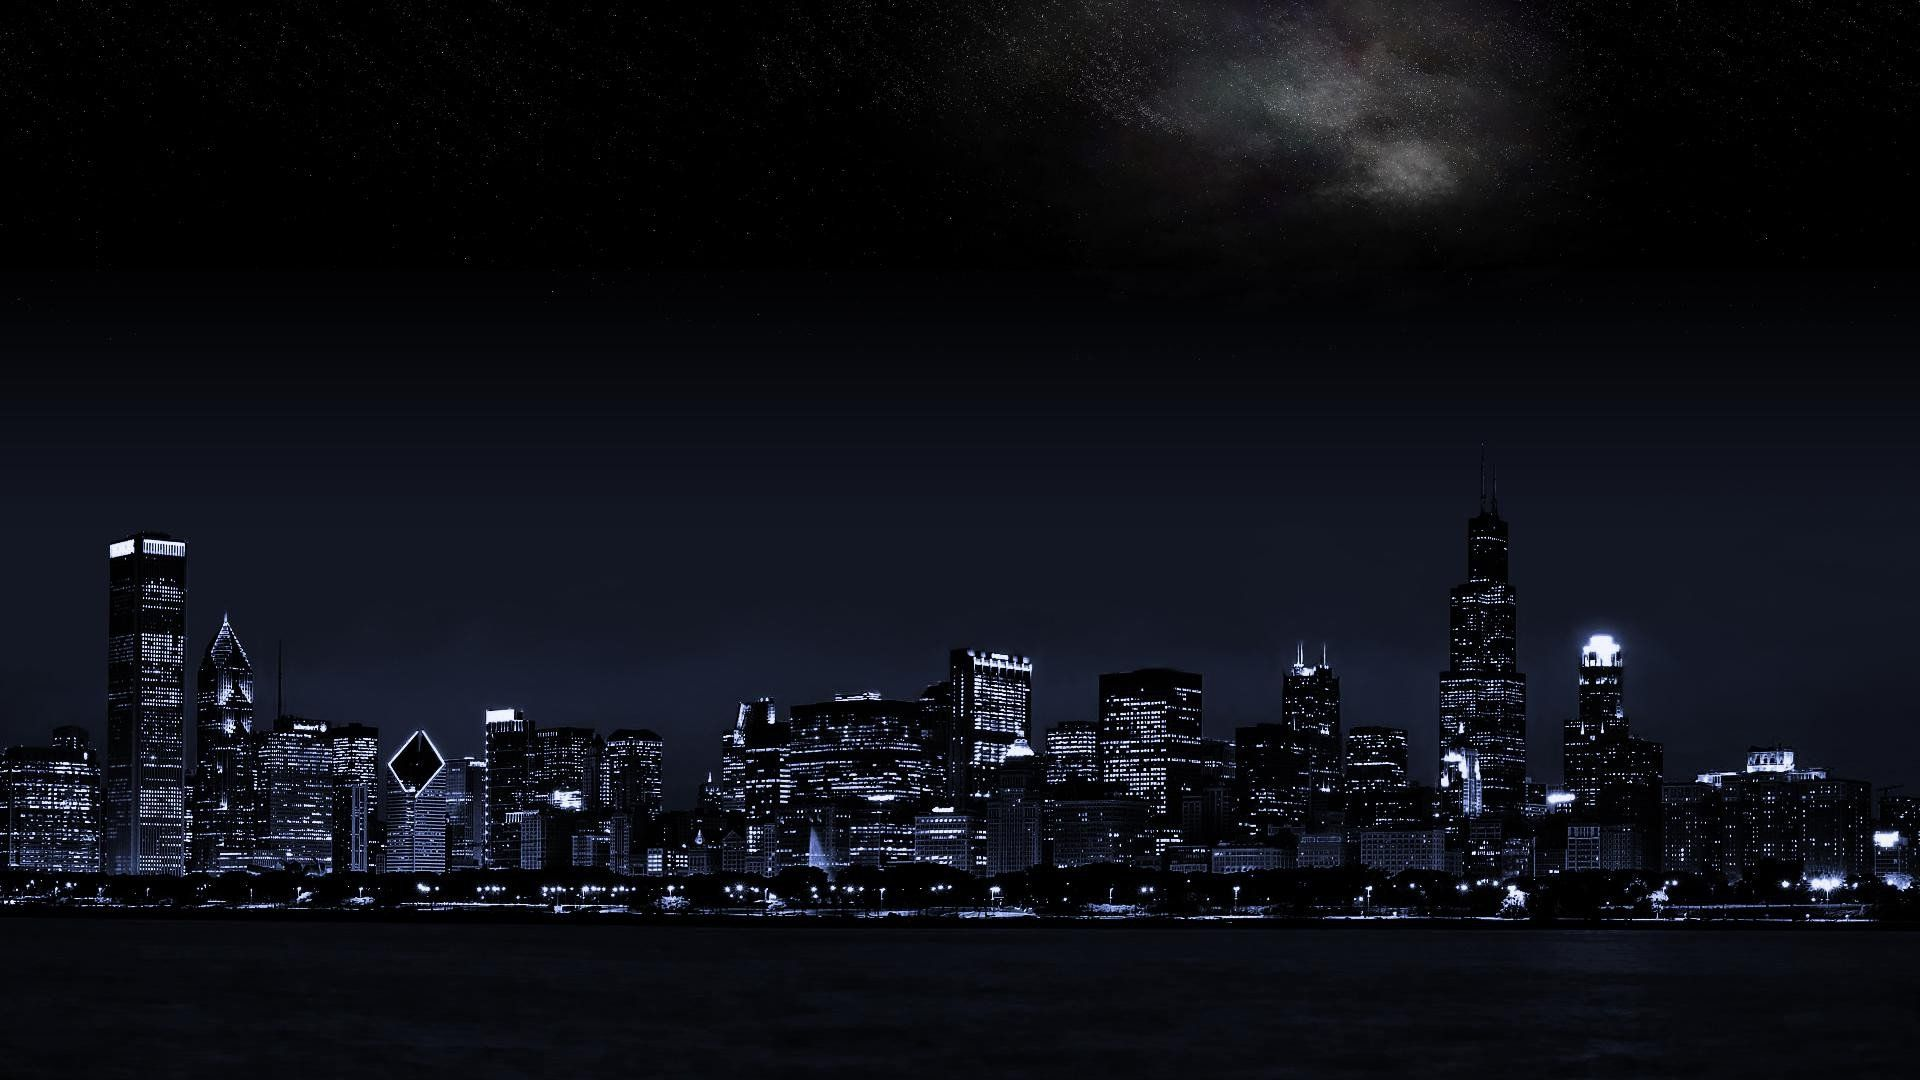 Night City Wallpaper Free Landscape Wallpapers